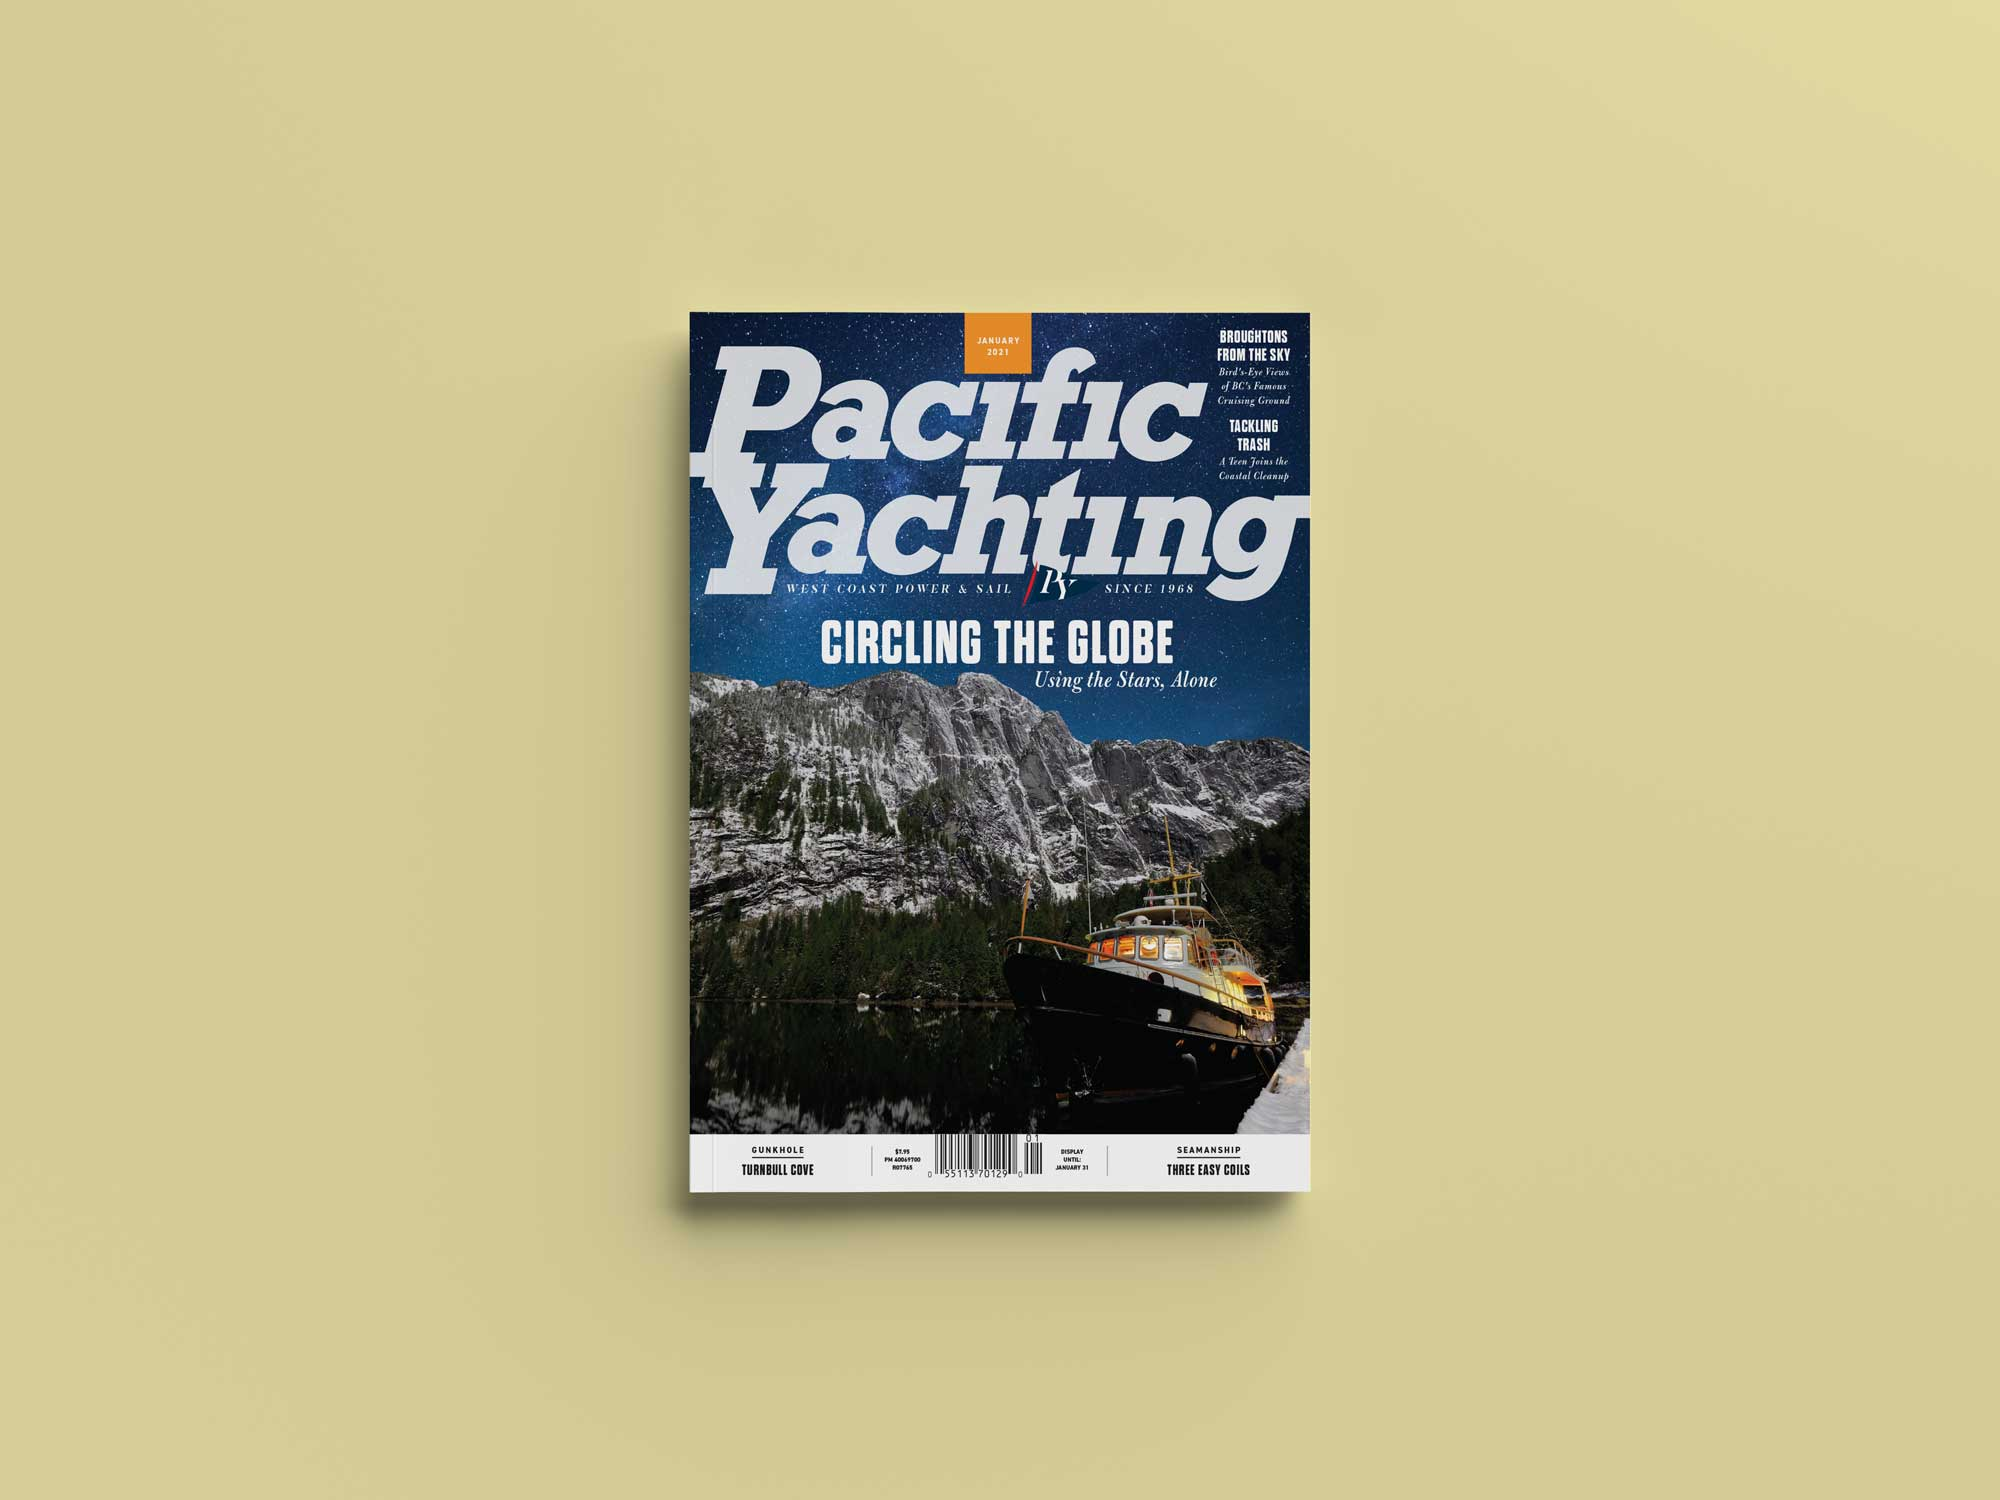 Pacific Yachting January 2021 issue